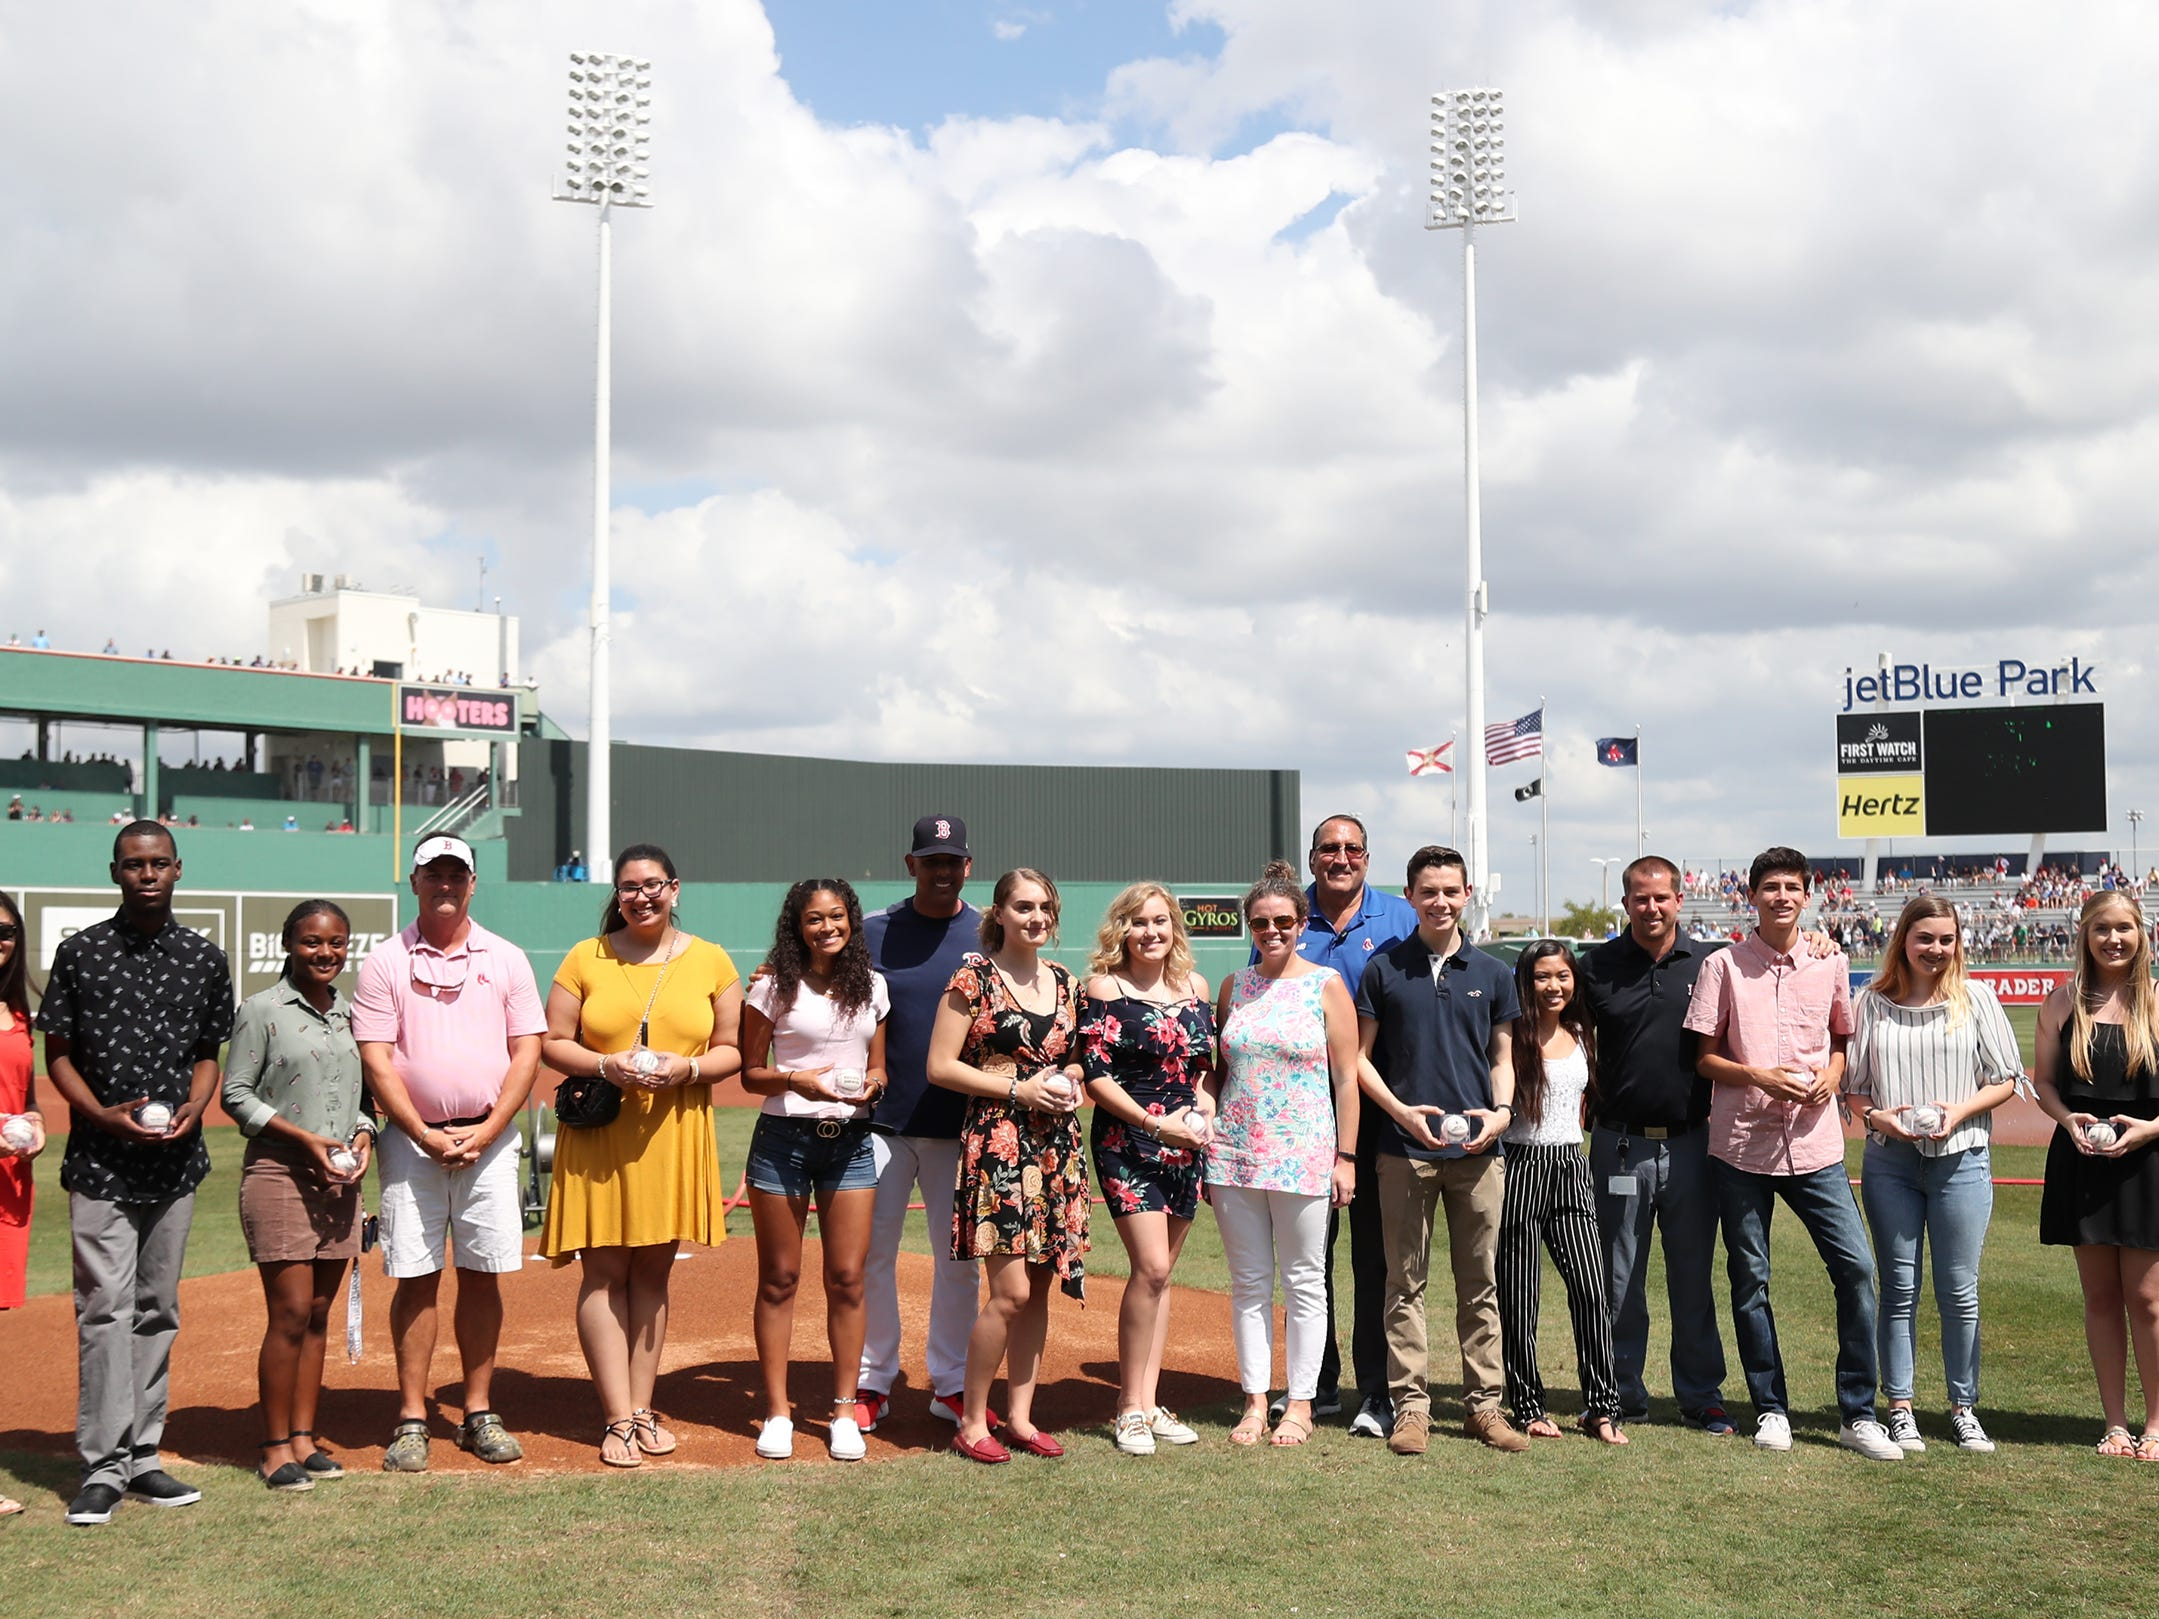 Thirteen Lee County public high school seniors each received a $5,000 scholarship from the Boston Red Sox Foundation on Saturday before the team's game against the New York Mets at JetBlue Park in Fort Myers. The students' academic achievements and community service efforts were the basis for the honor.